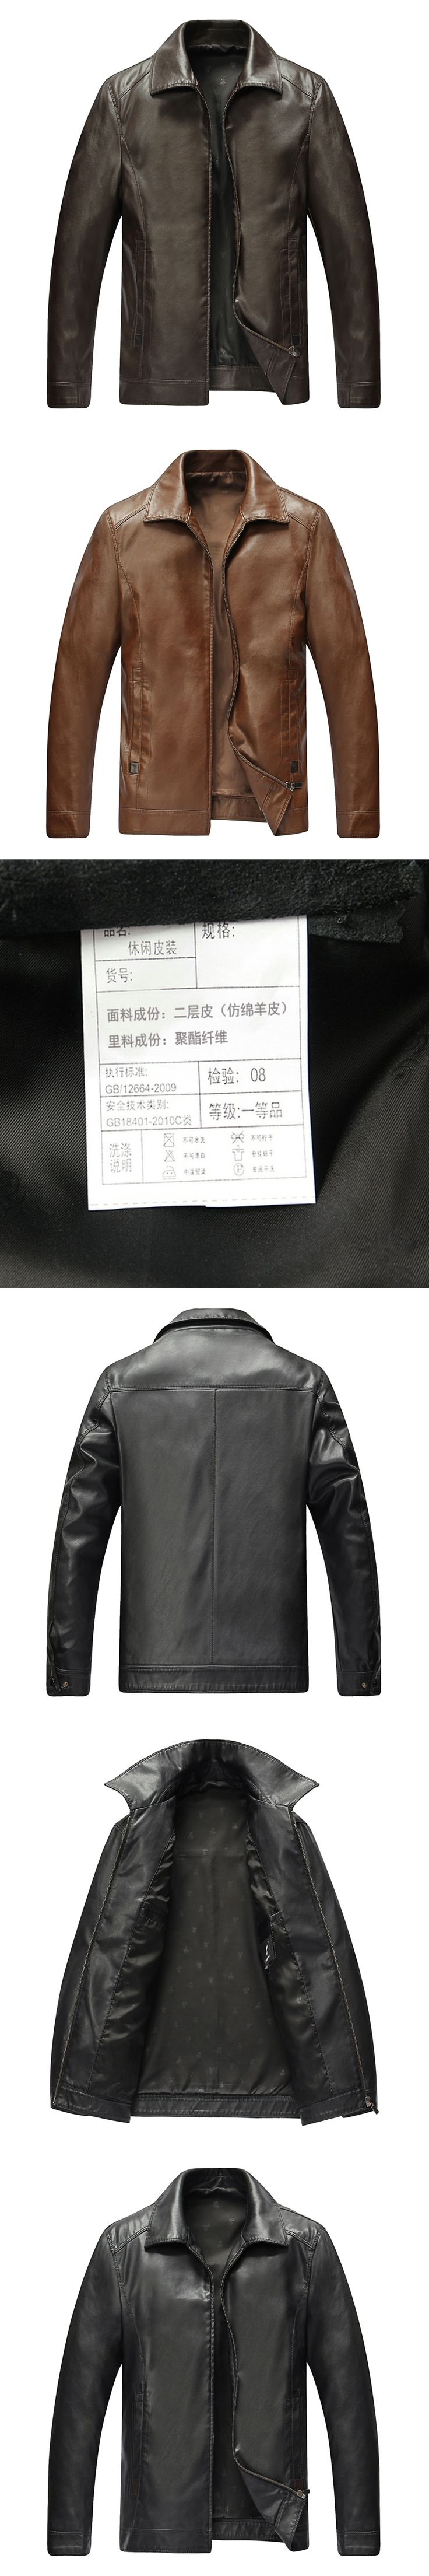 Chinese Mens Tailored Leather Jackets Brown Cafe Black Chaqueta Turn Down Classcial Simple Style Full-Zip Fur Coat Man Overcoats